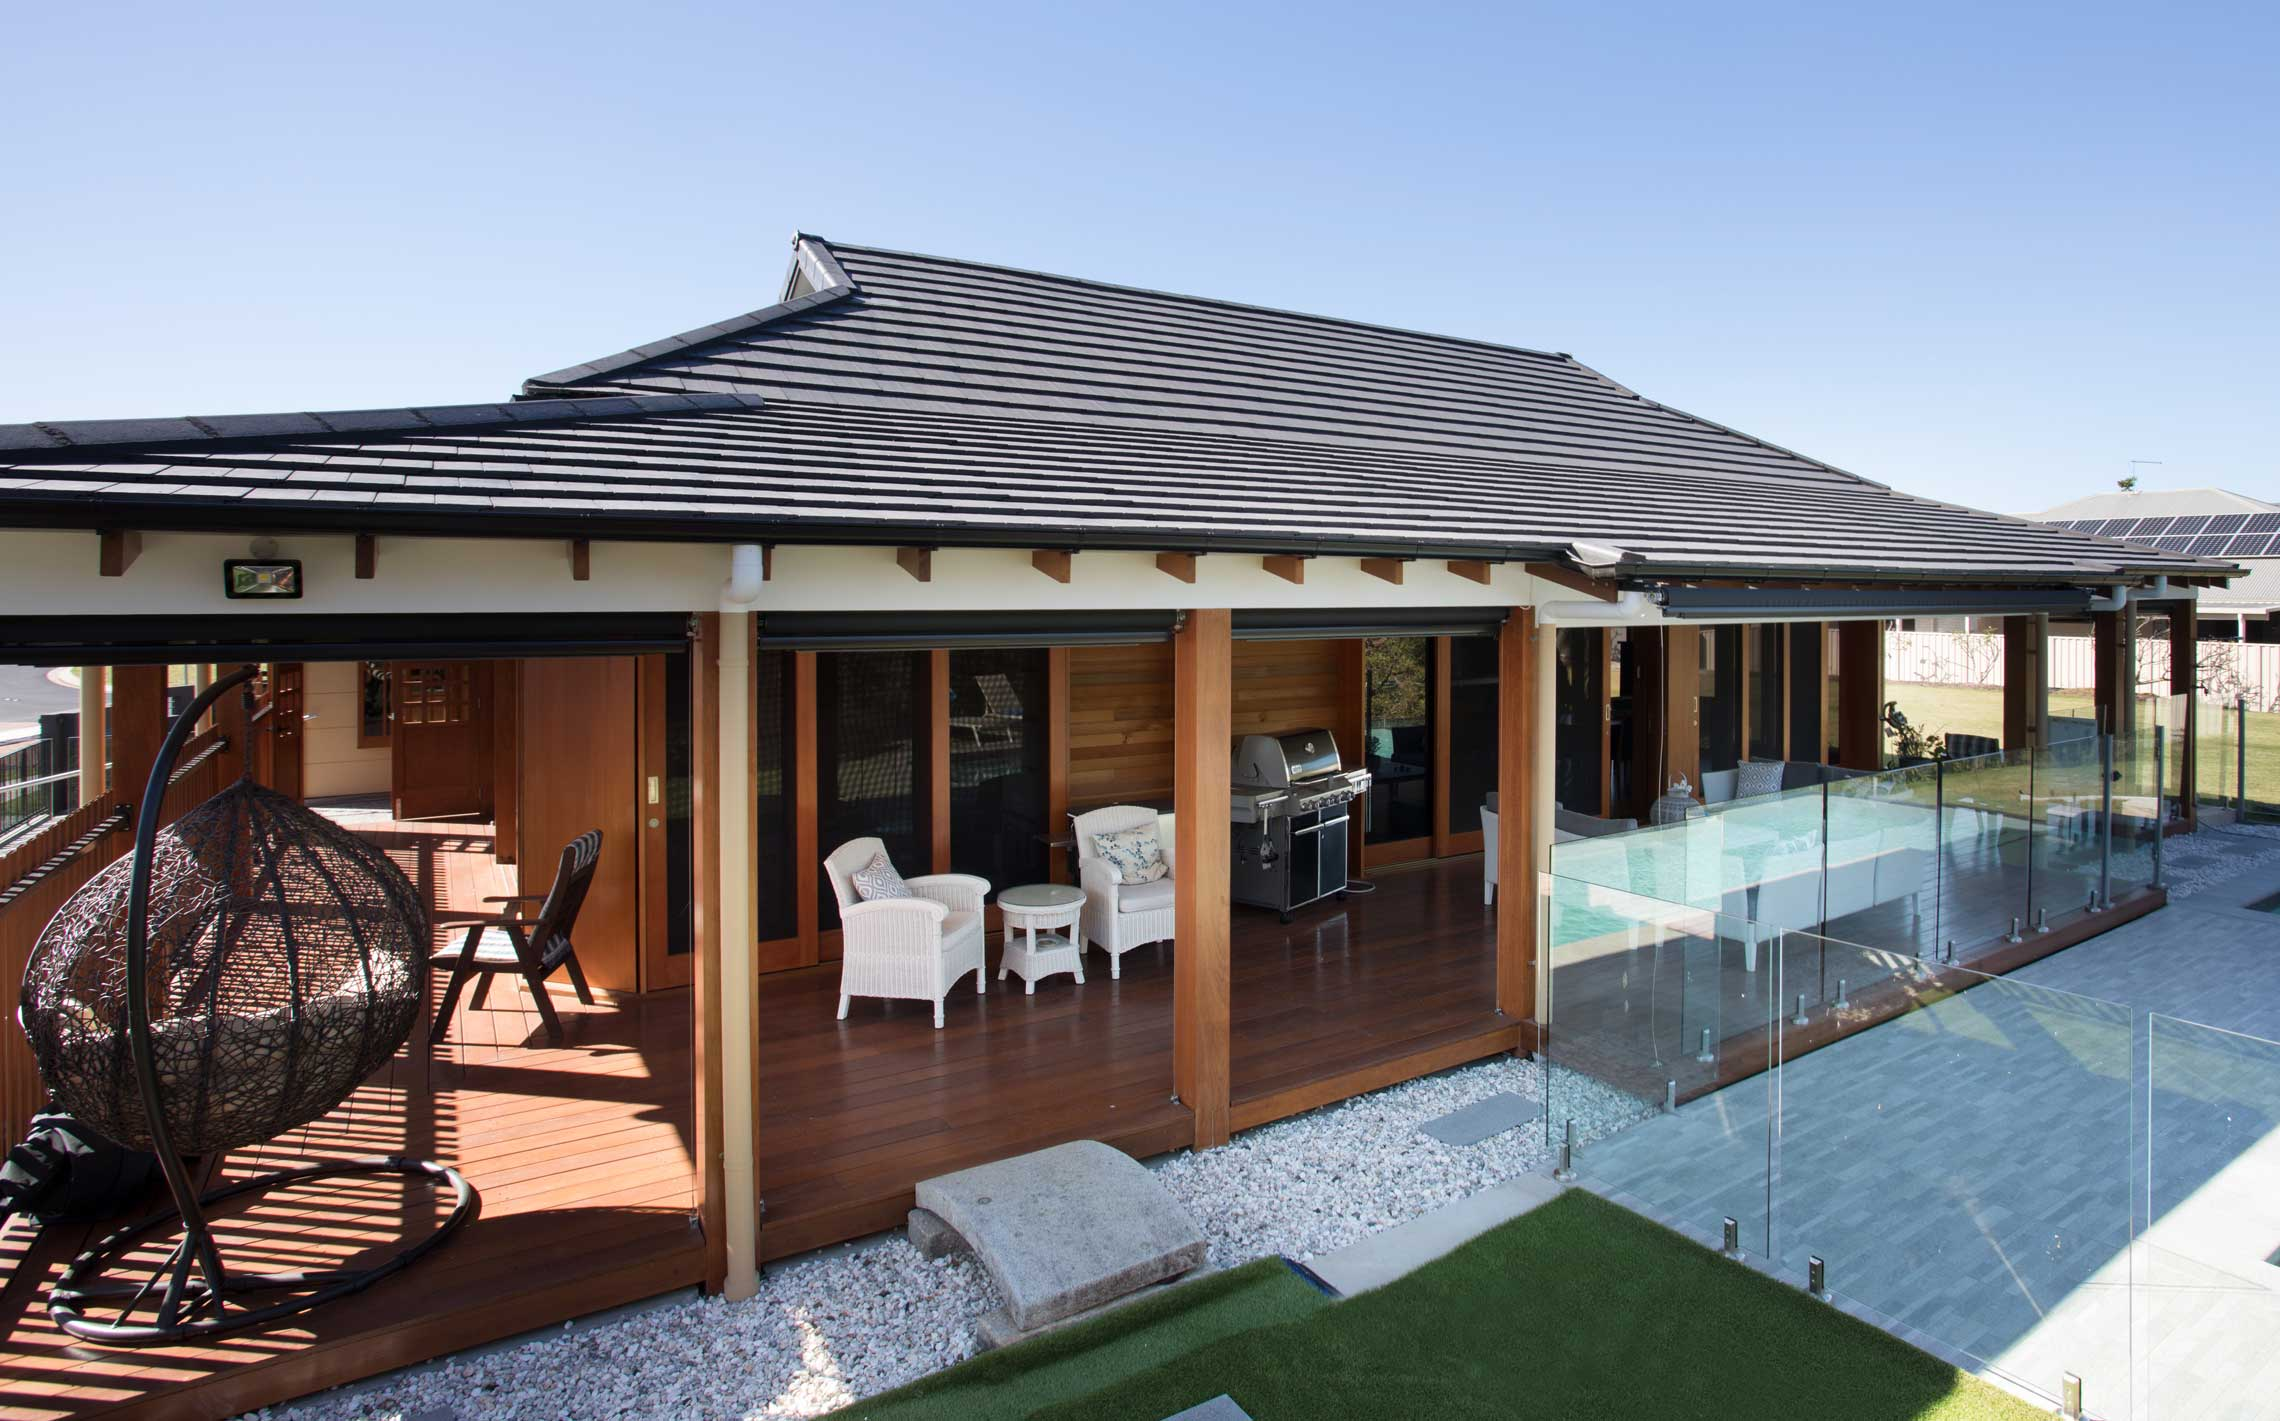 Zen and the Art of Roofing: a Japanese-style home design